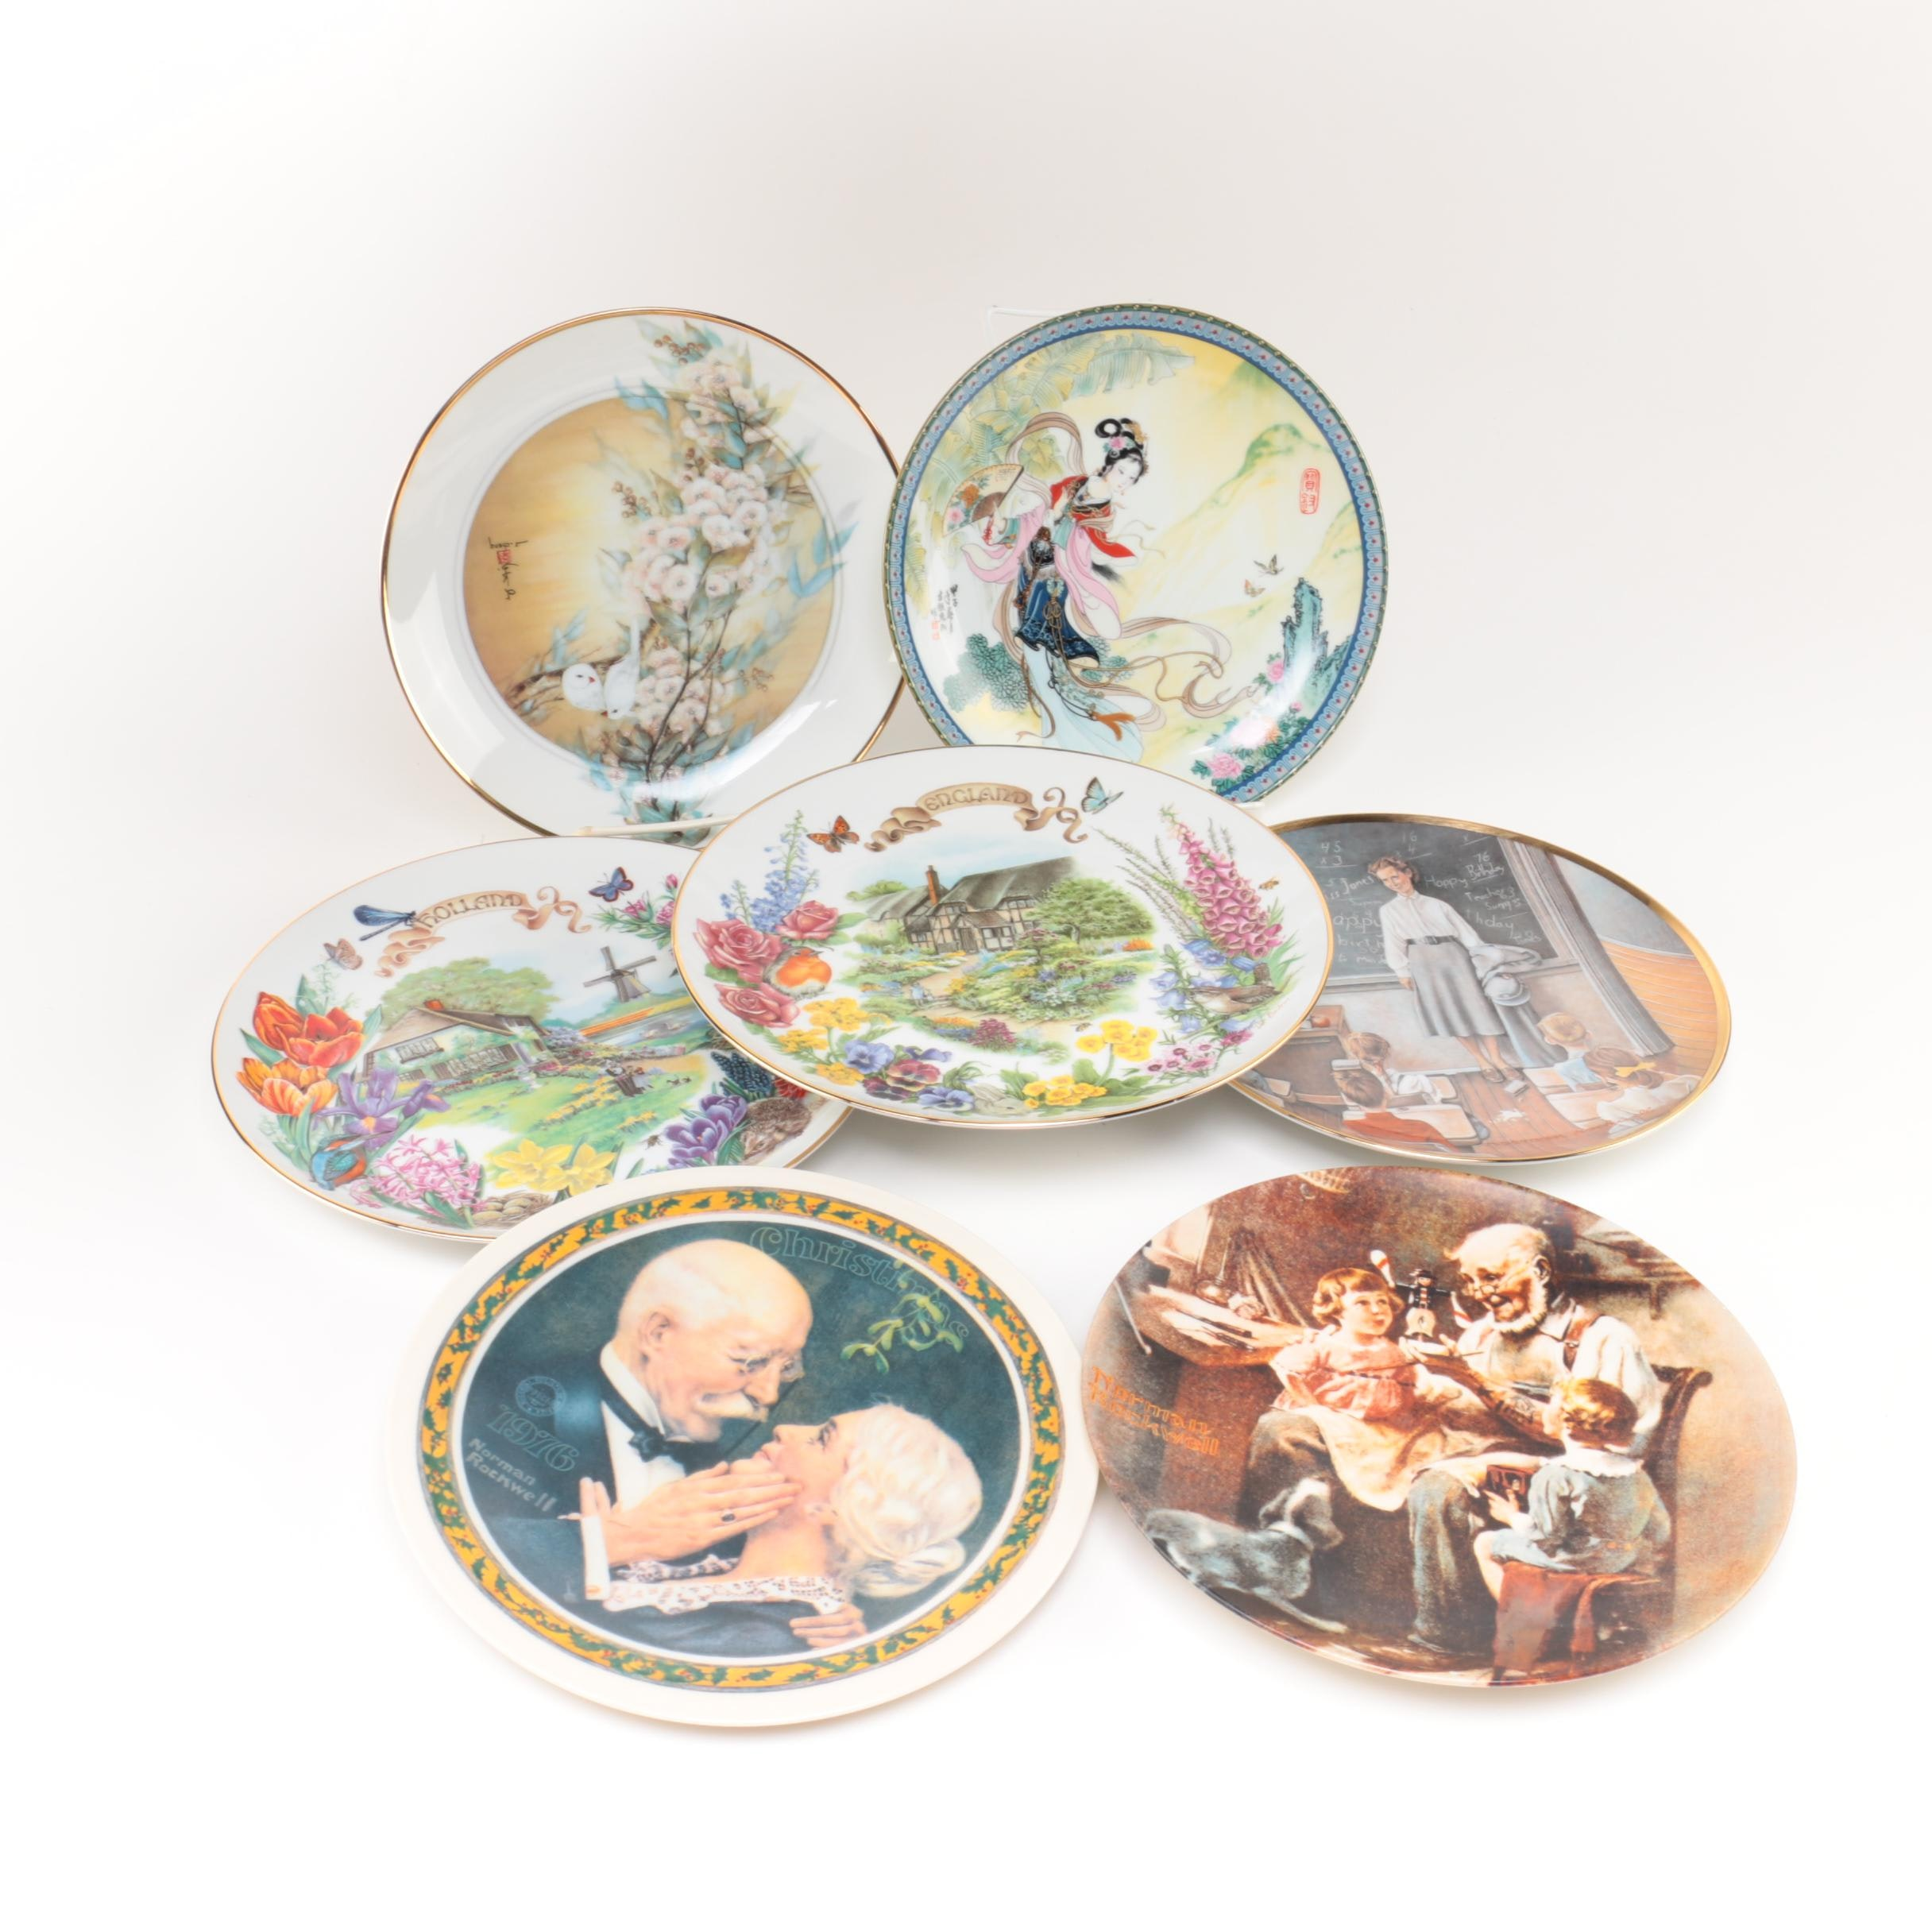 Assortment of Ceramic and Porcelain Decorative Plates ...  sc 1 st  EBTH.com & Assortment of Ceramic and Porcelain Decorative Plates : EBTH